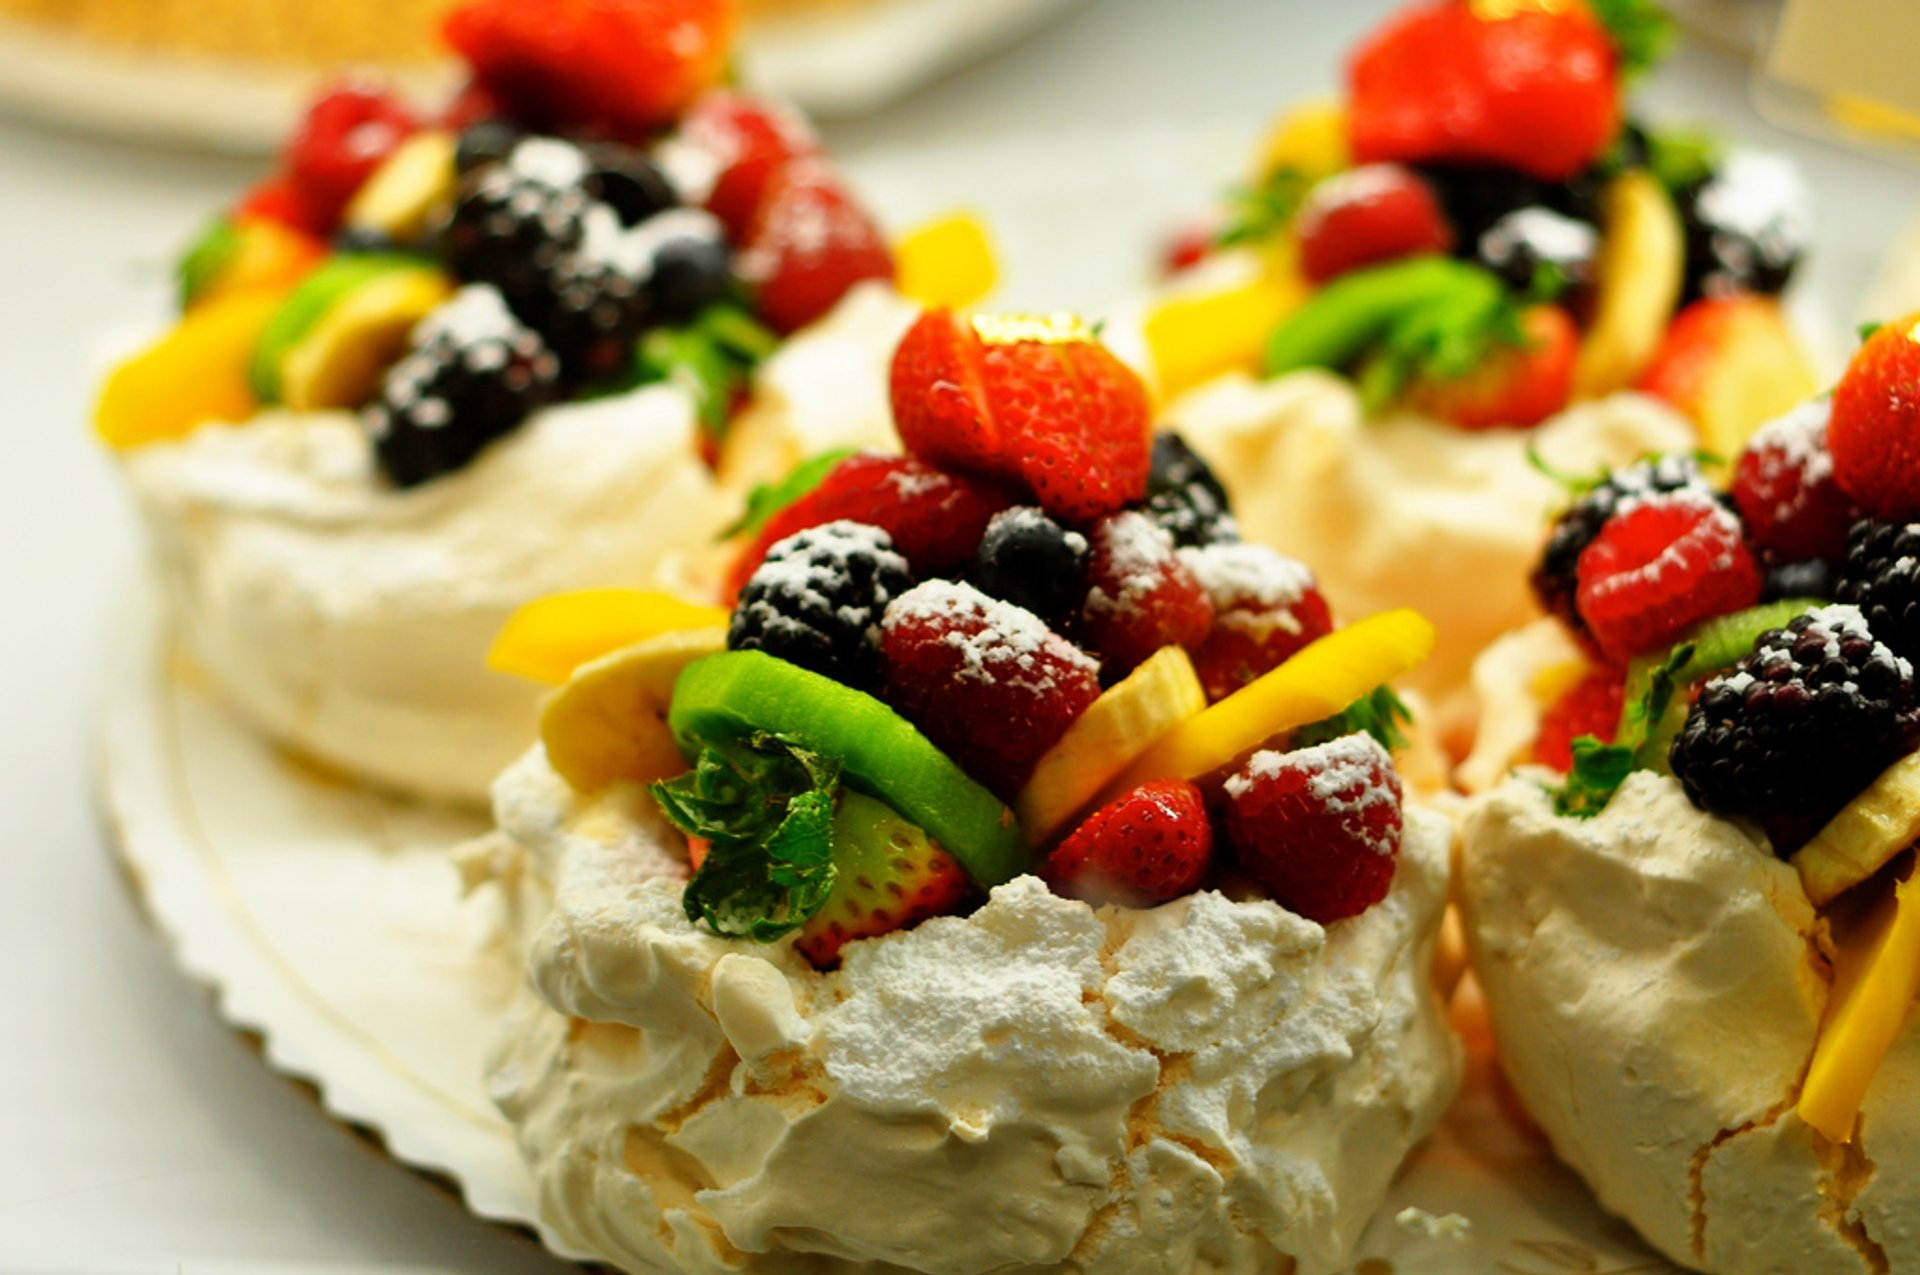 Pavlova Dessert in New Zealand 2020 - Best Time